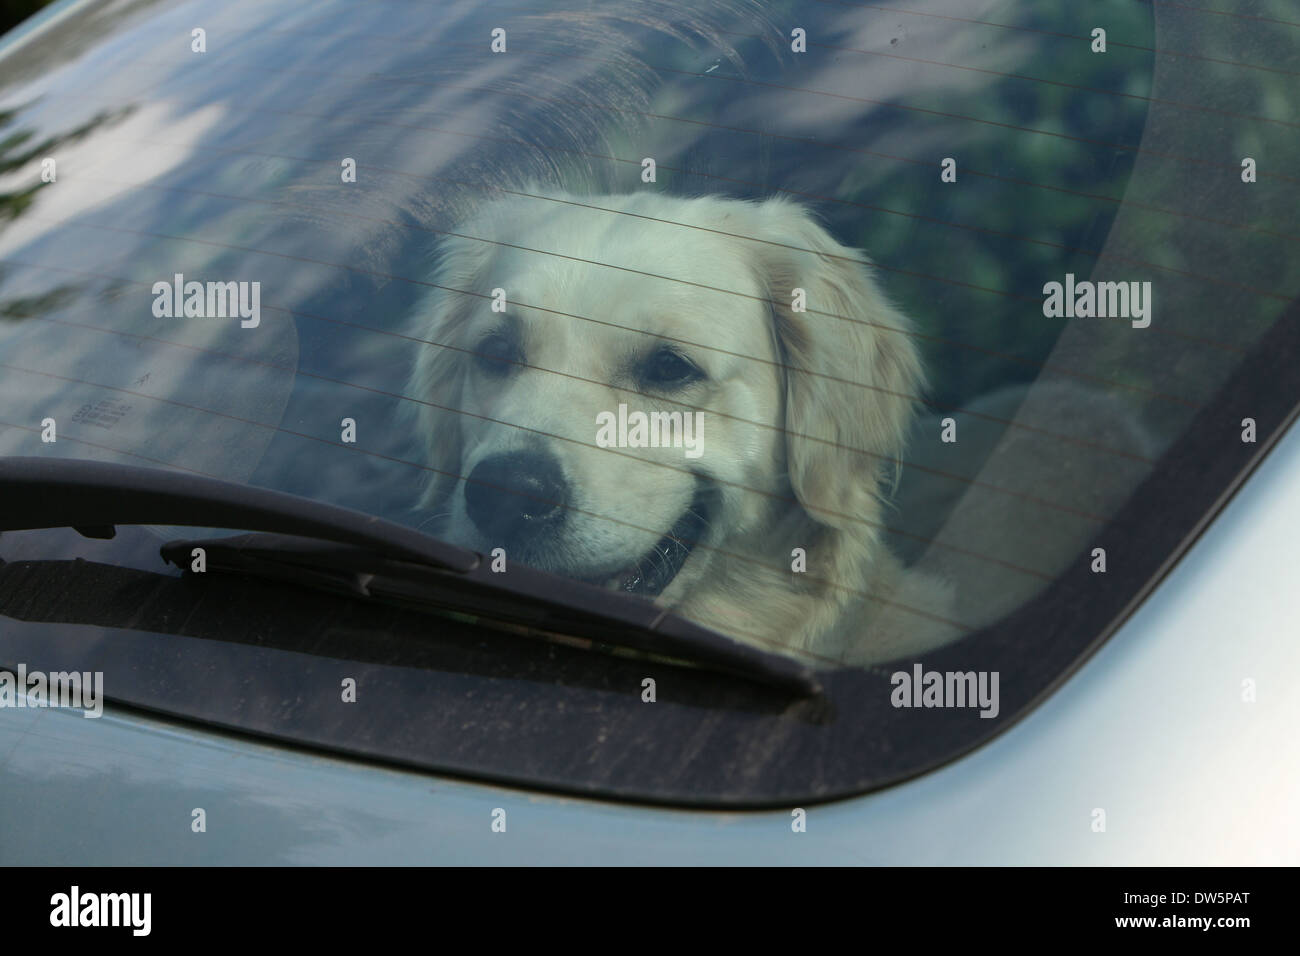 Dog Golden Retriever / adult  in a car looking out window - Stock Image